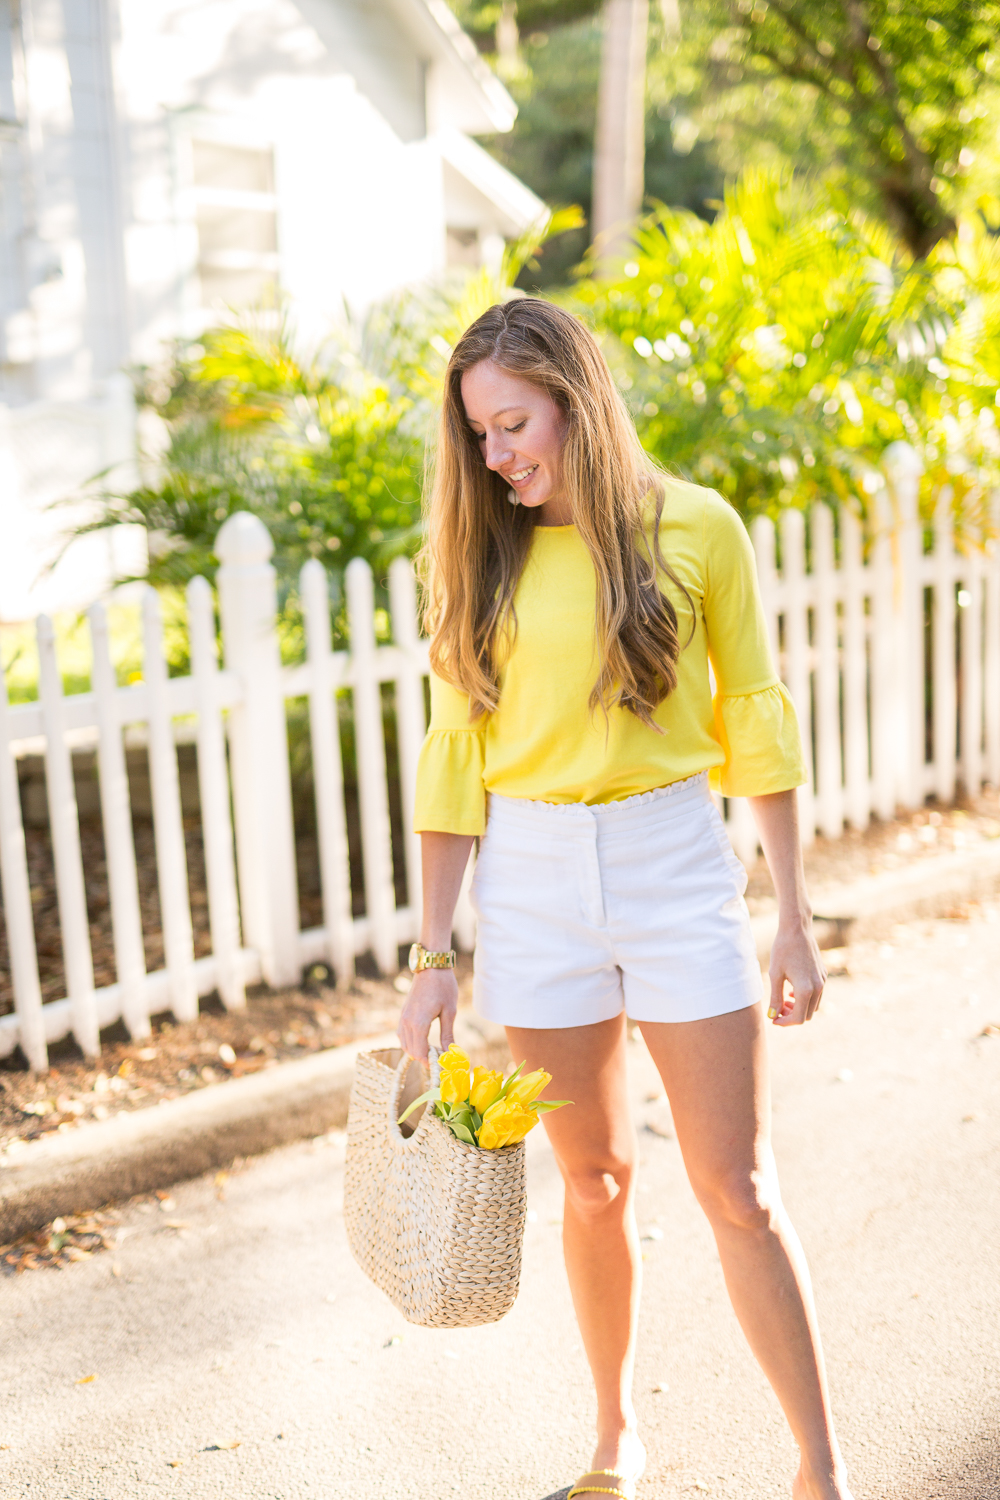 Classic Spring Outfit Idea - Yellow Top